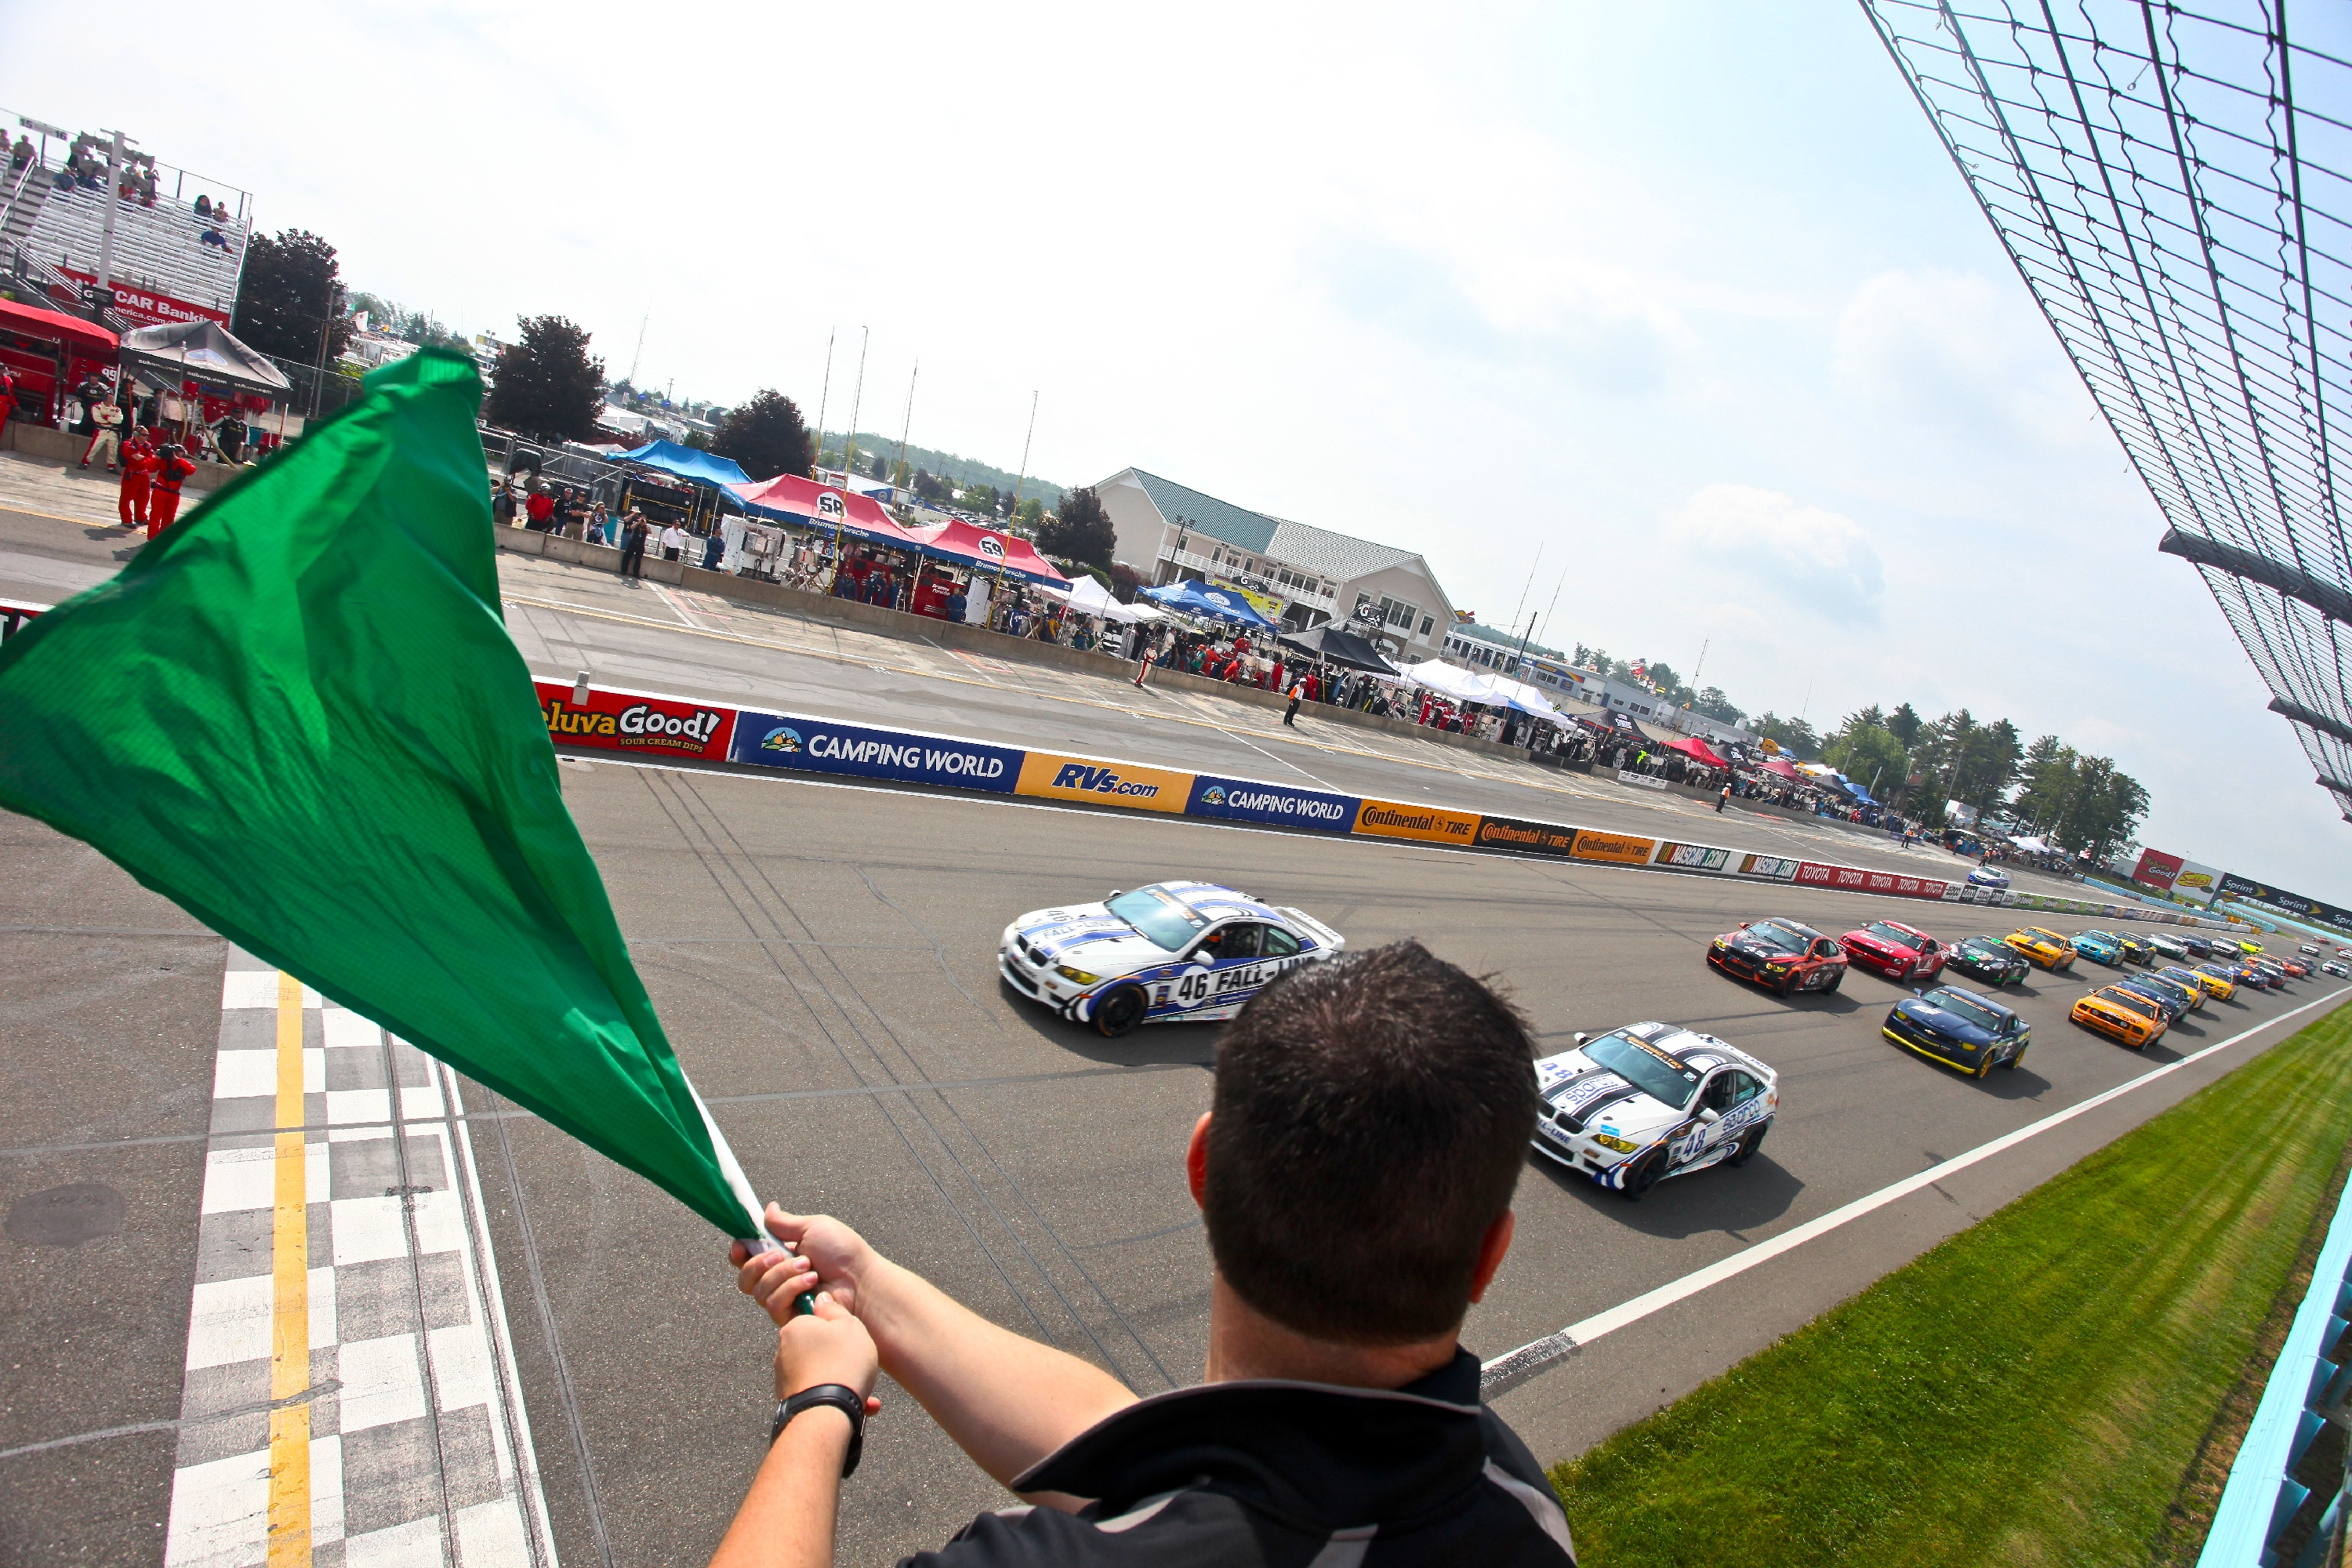 Green Flag during NASCAR race